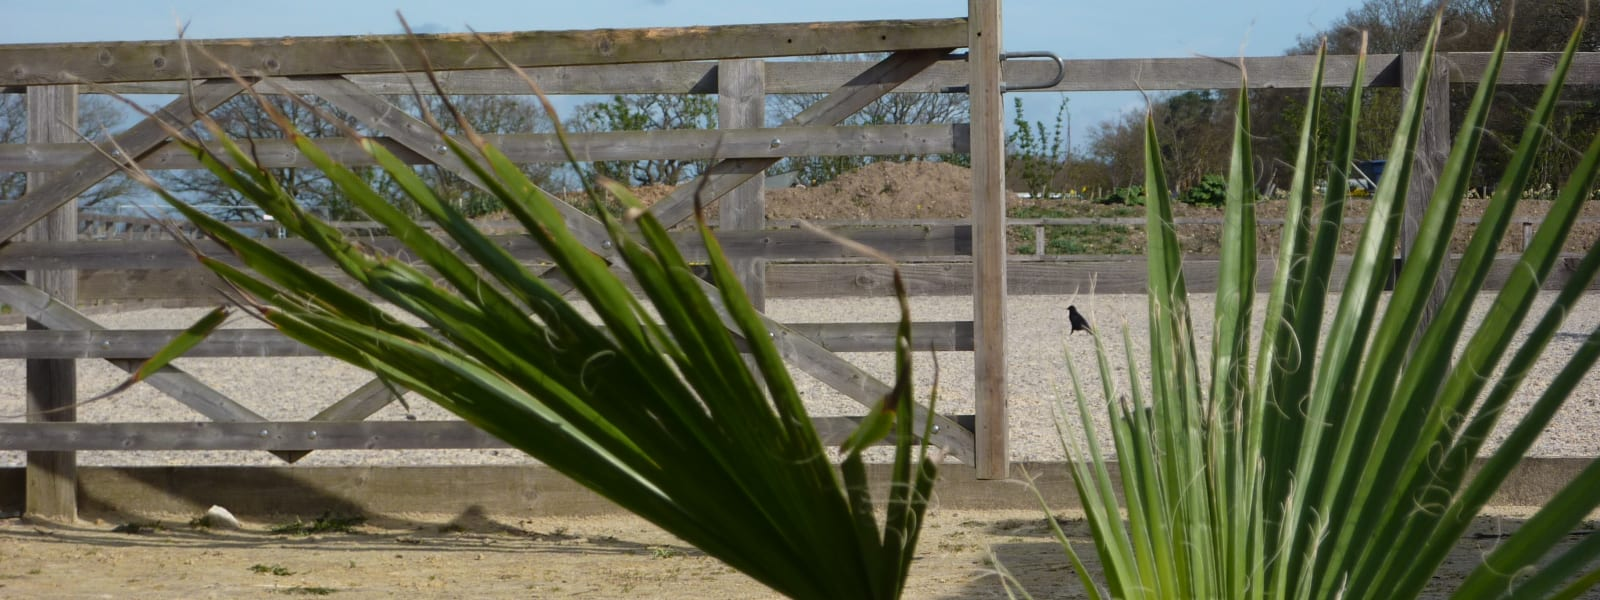 A palm tree in front of the sand school. JAC is situated in 15 acres of Berkshire countryside